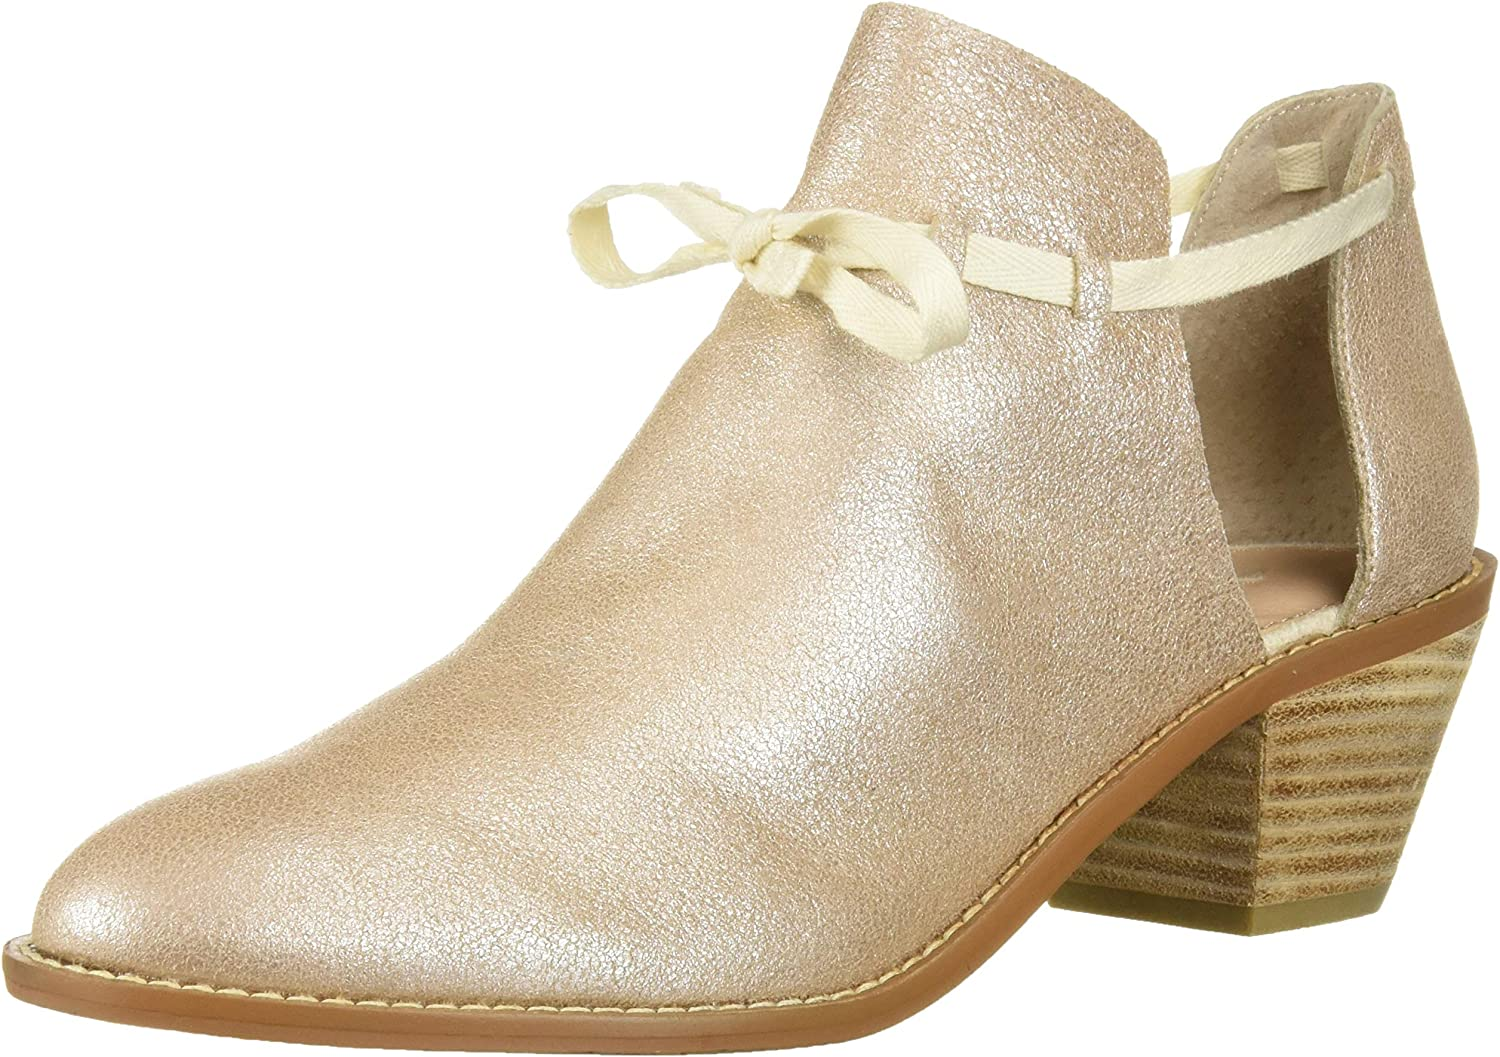 KELSI DAGGER BROOKLYN Women's Kym Boot Deluxe Ankle Directly managed store